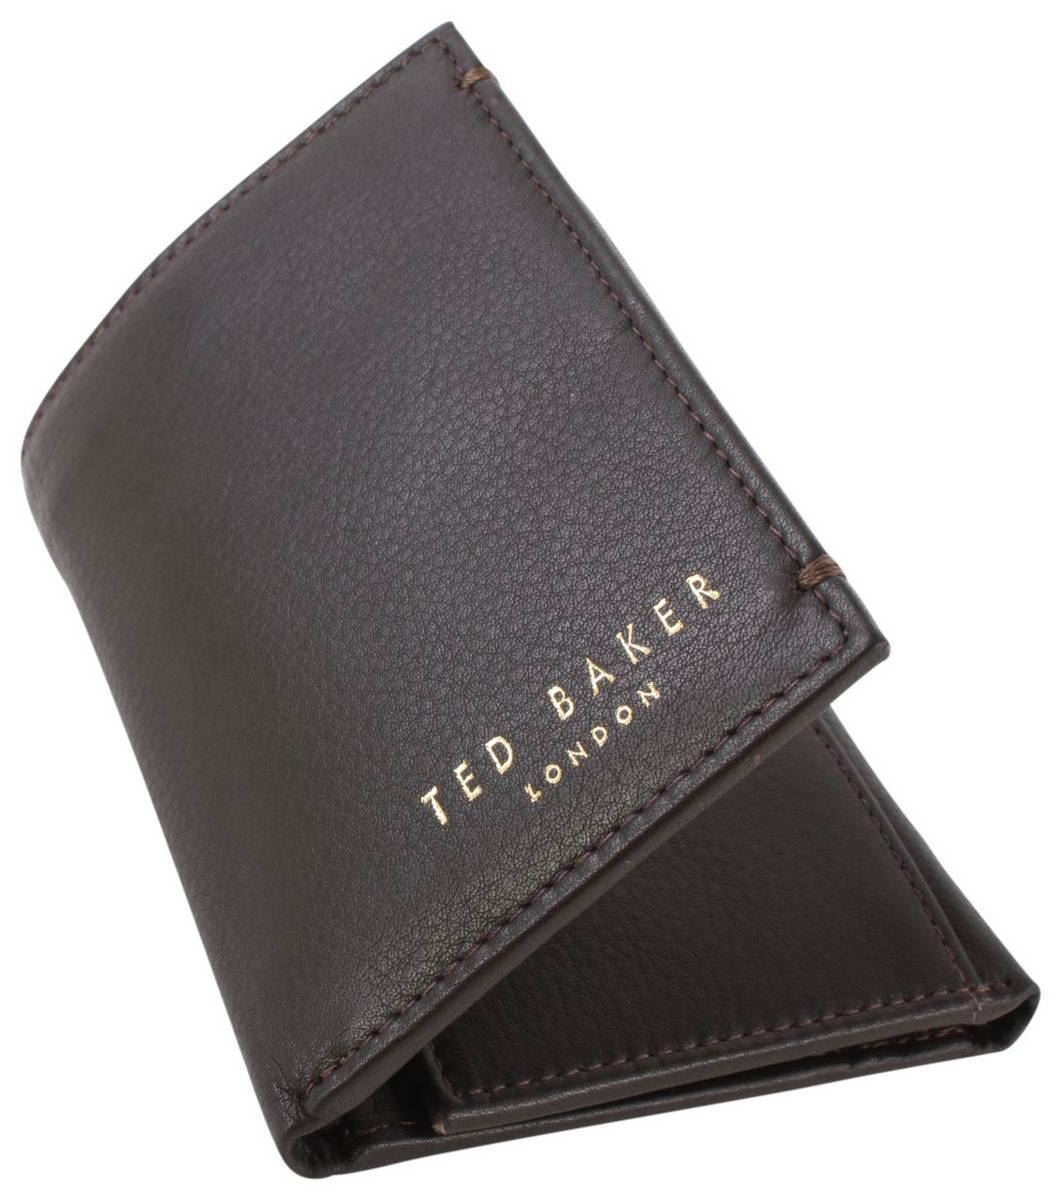 8878705b5149b9 Ted baker mens jonnys mini card wallet chocolate ebay jpg 1061x1200 Ted  baker mens wallets